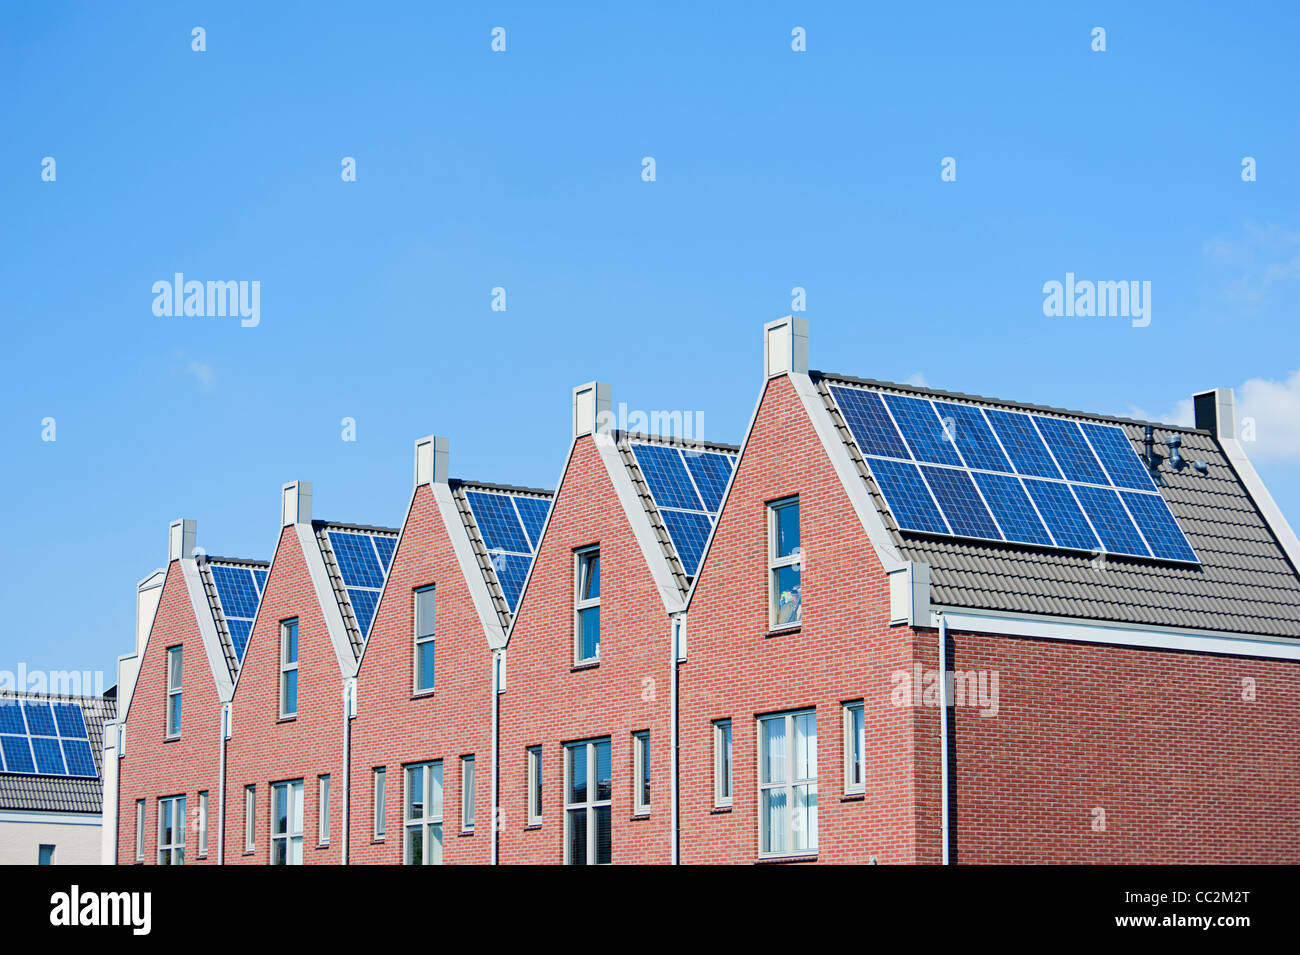 Maisons néerlandaise moderne with solar panels on roof Photo Stock